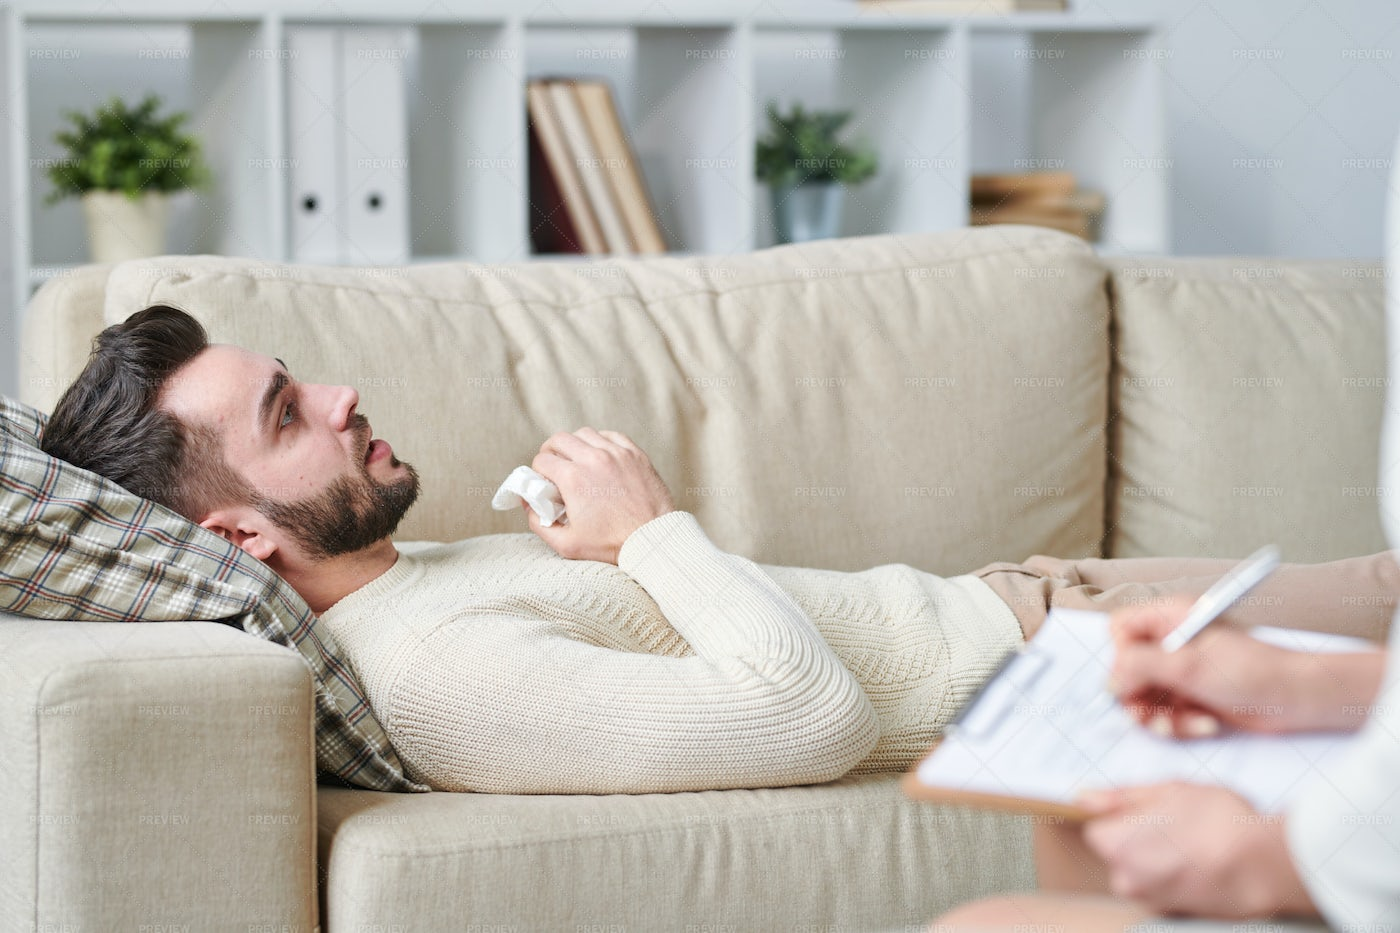 Man On Couch: Stock Photos